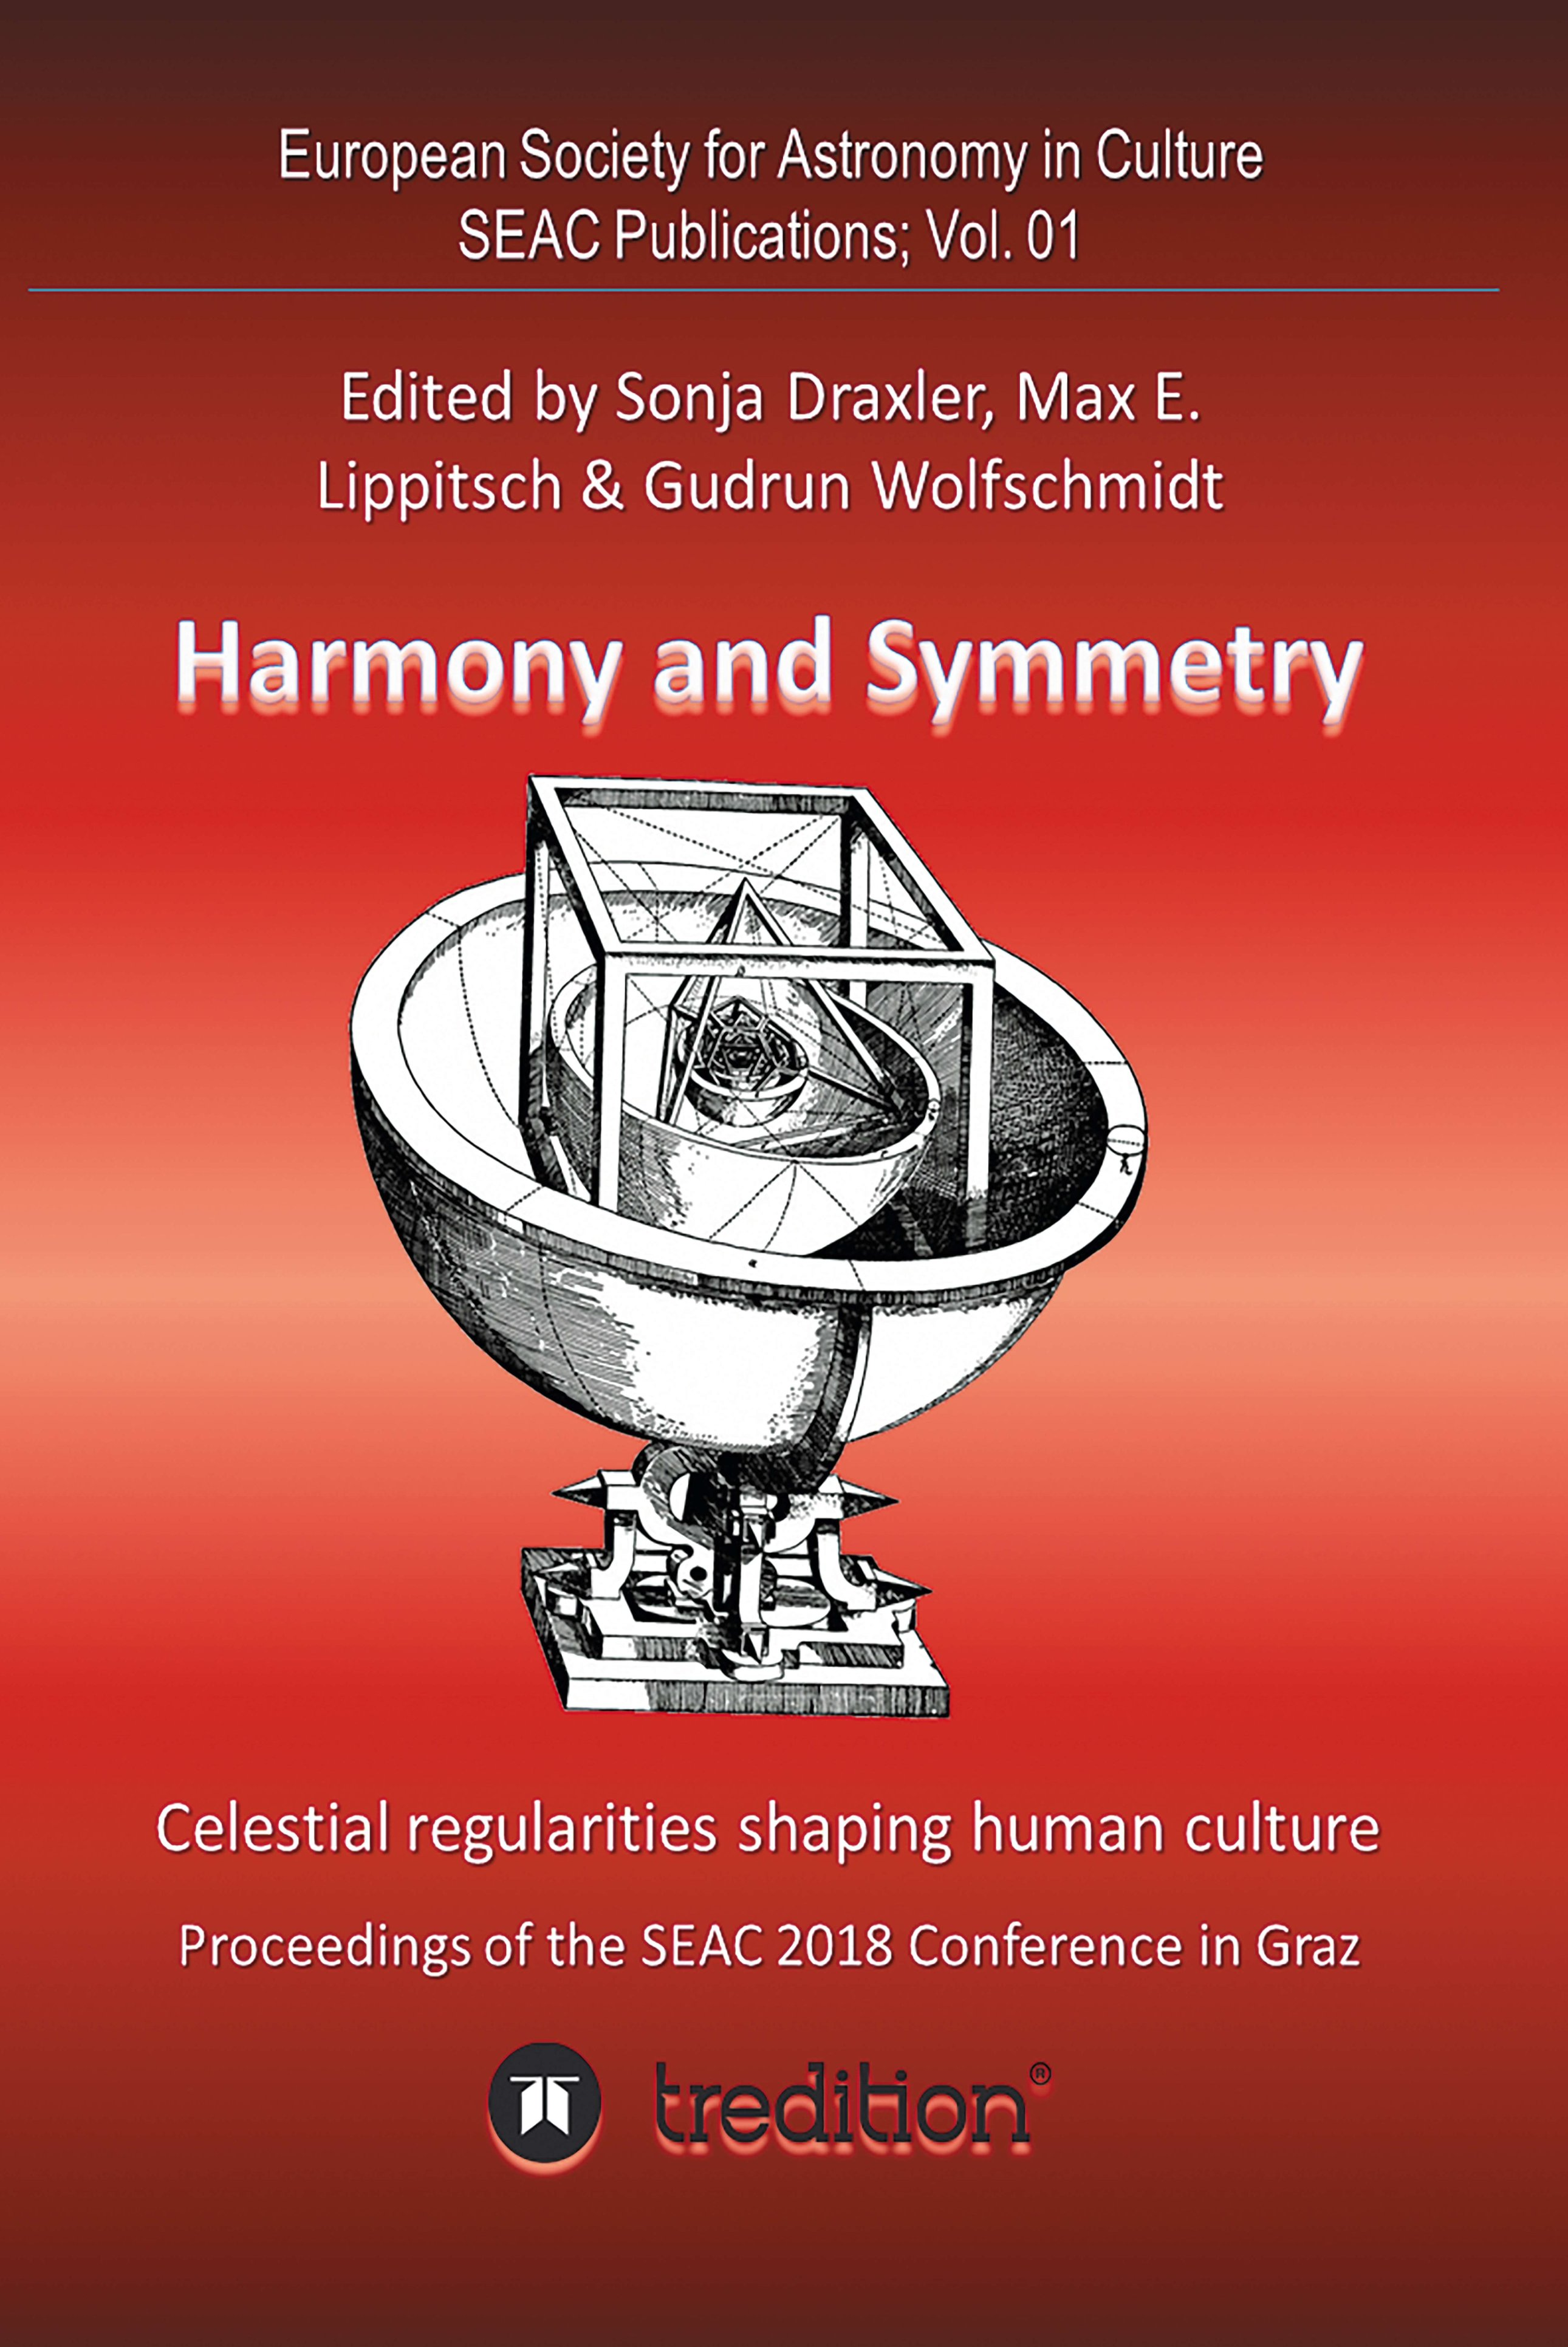 Harmony and Symmetry. Celestial regularities shaping human culture - Insights into the connection between astronomy and humanity